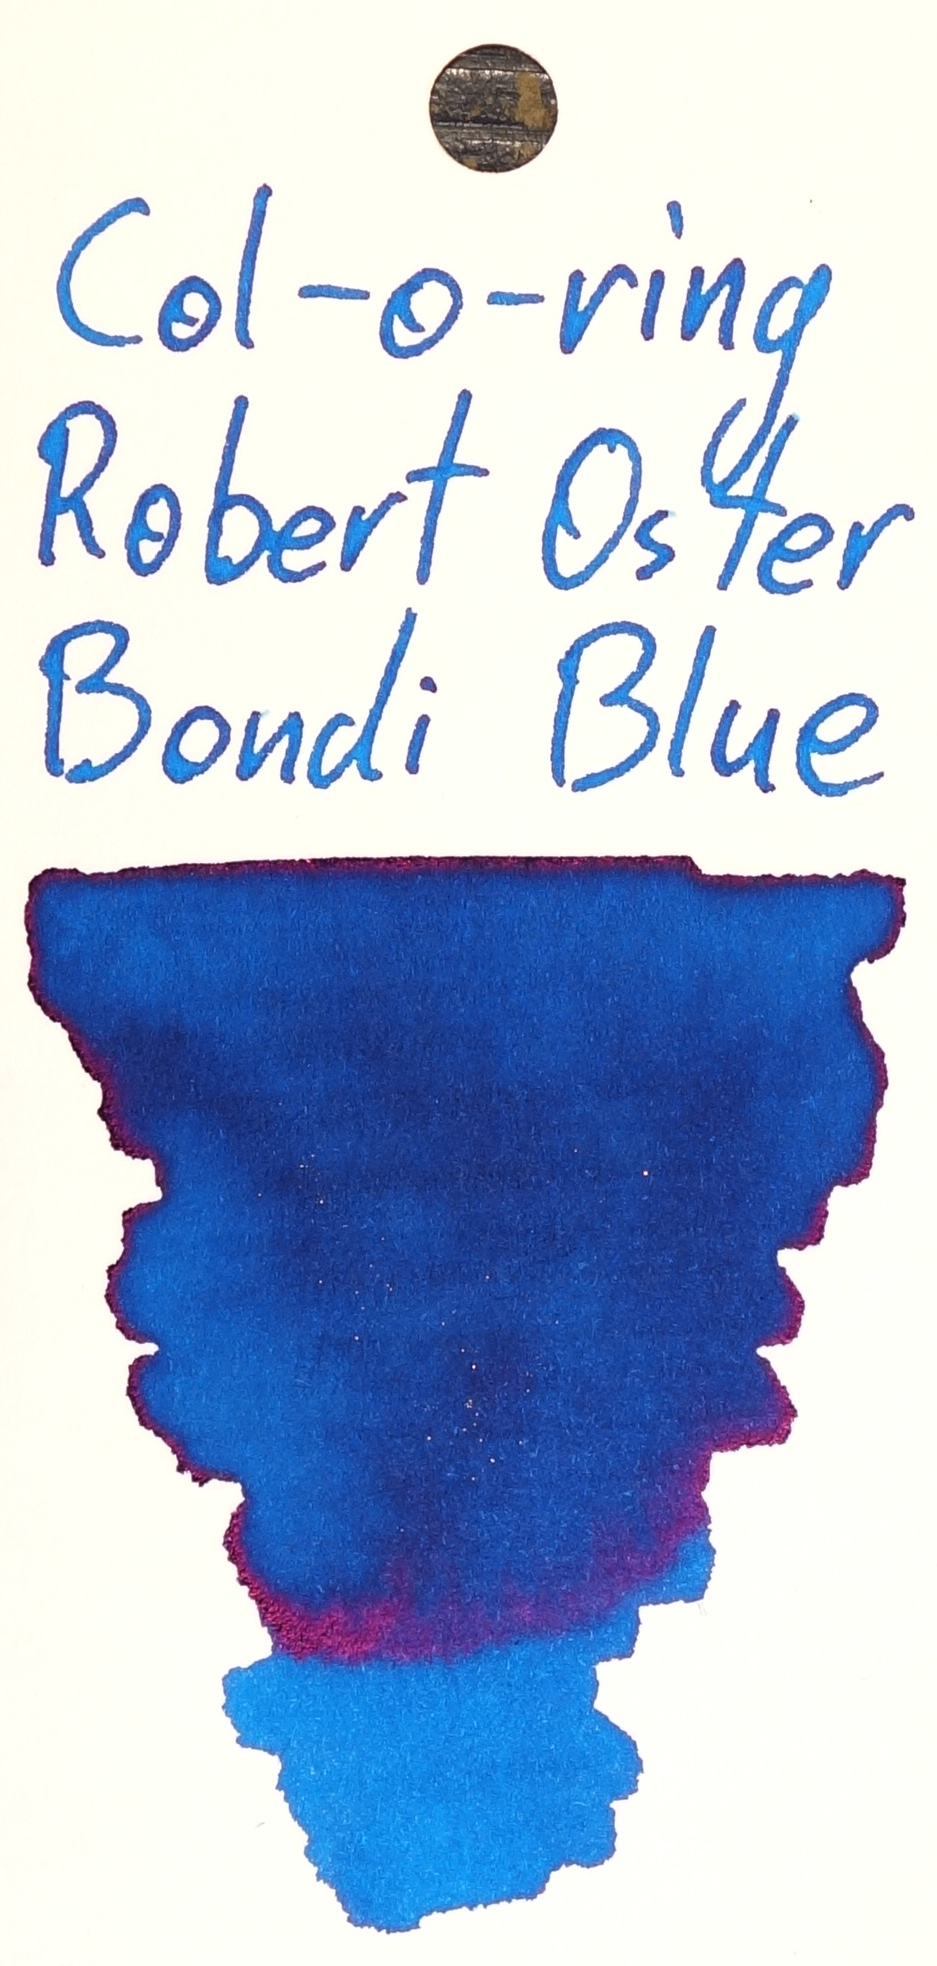 Robert Oster Bondi Blue Col-o-ring.JPG